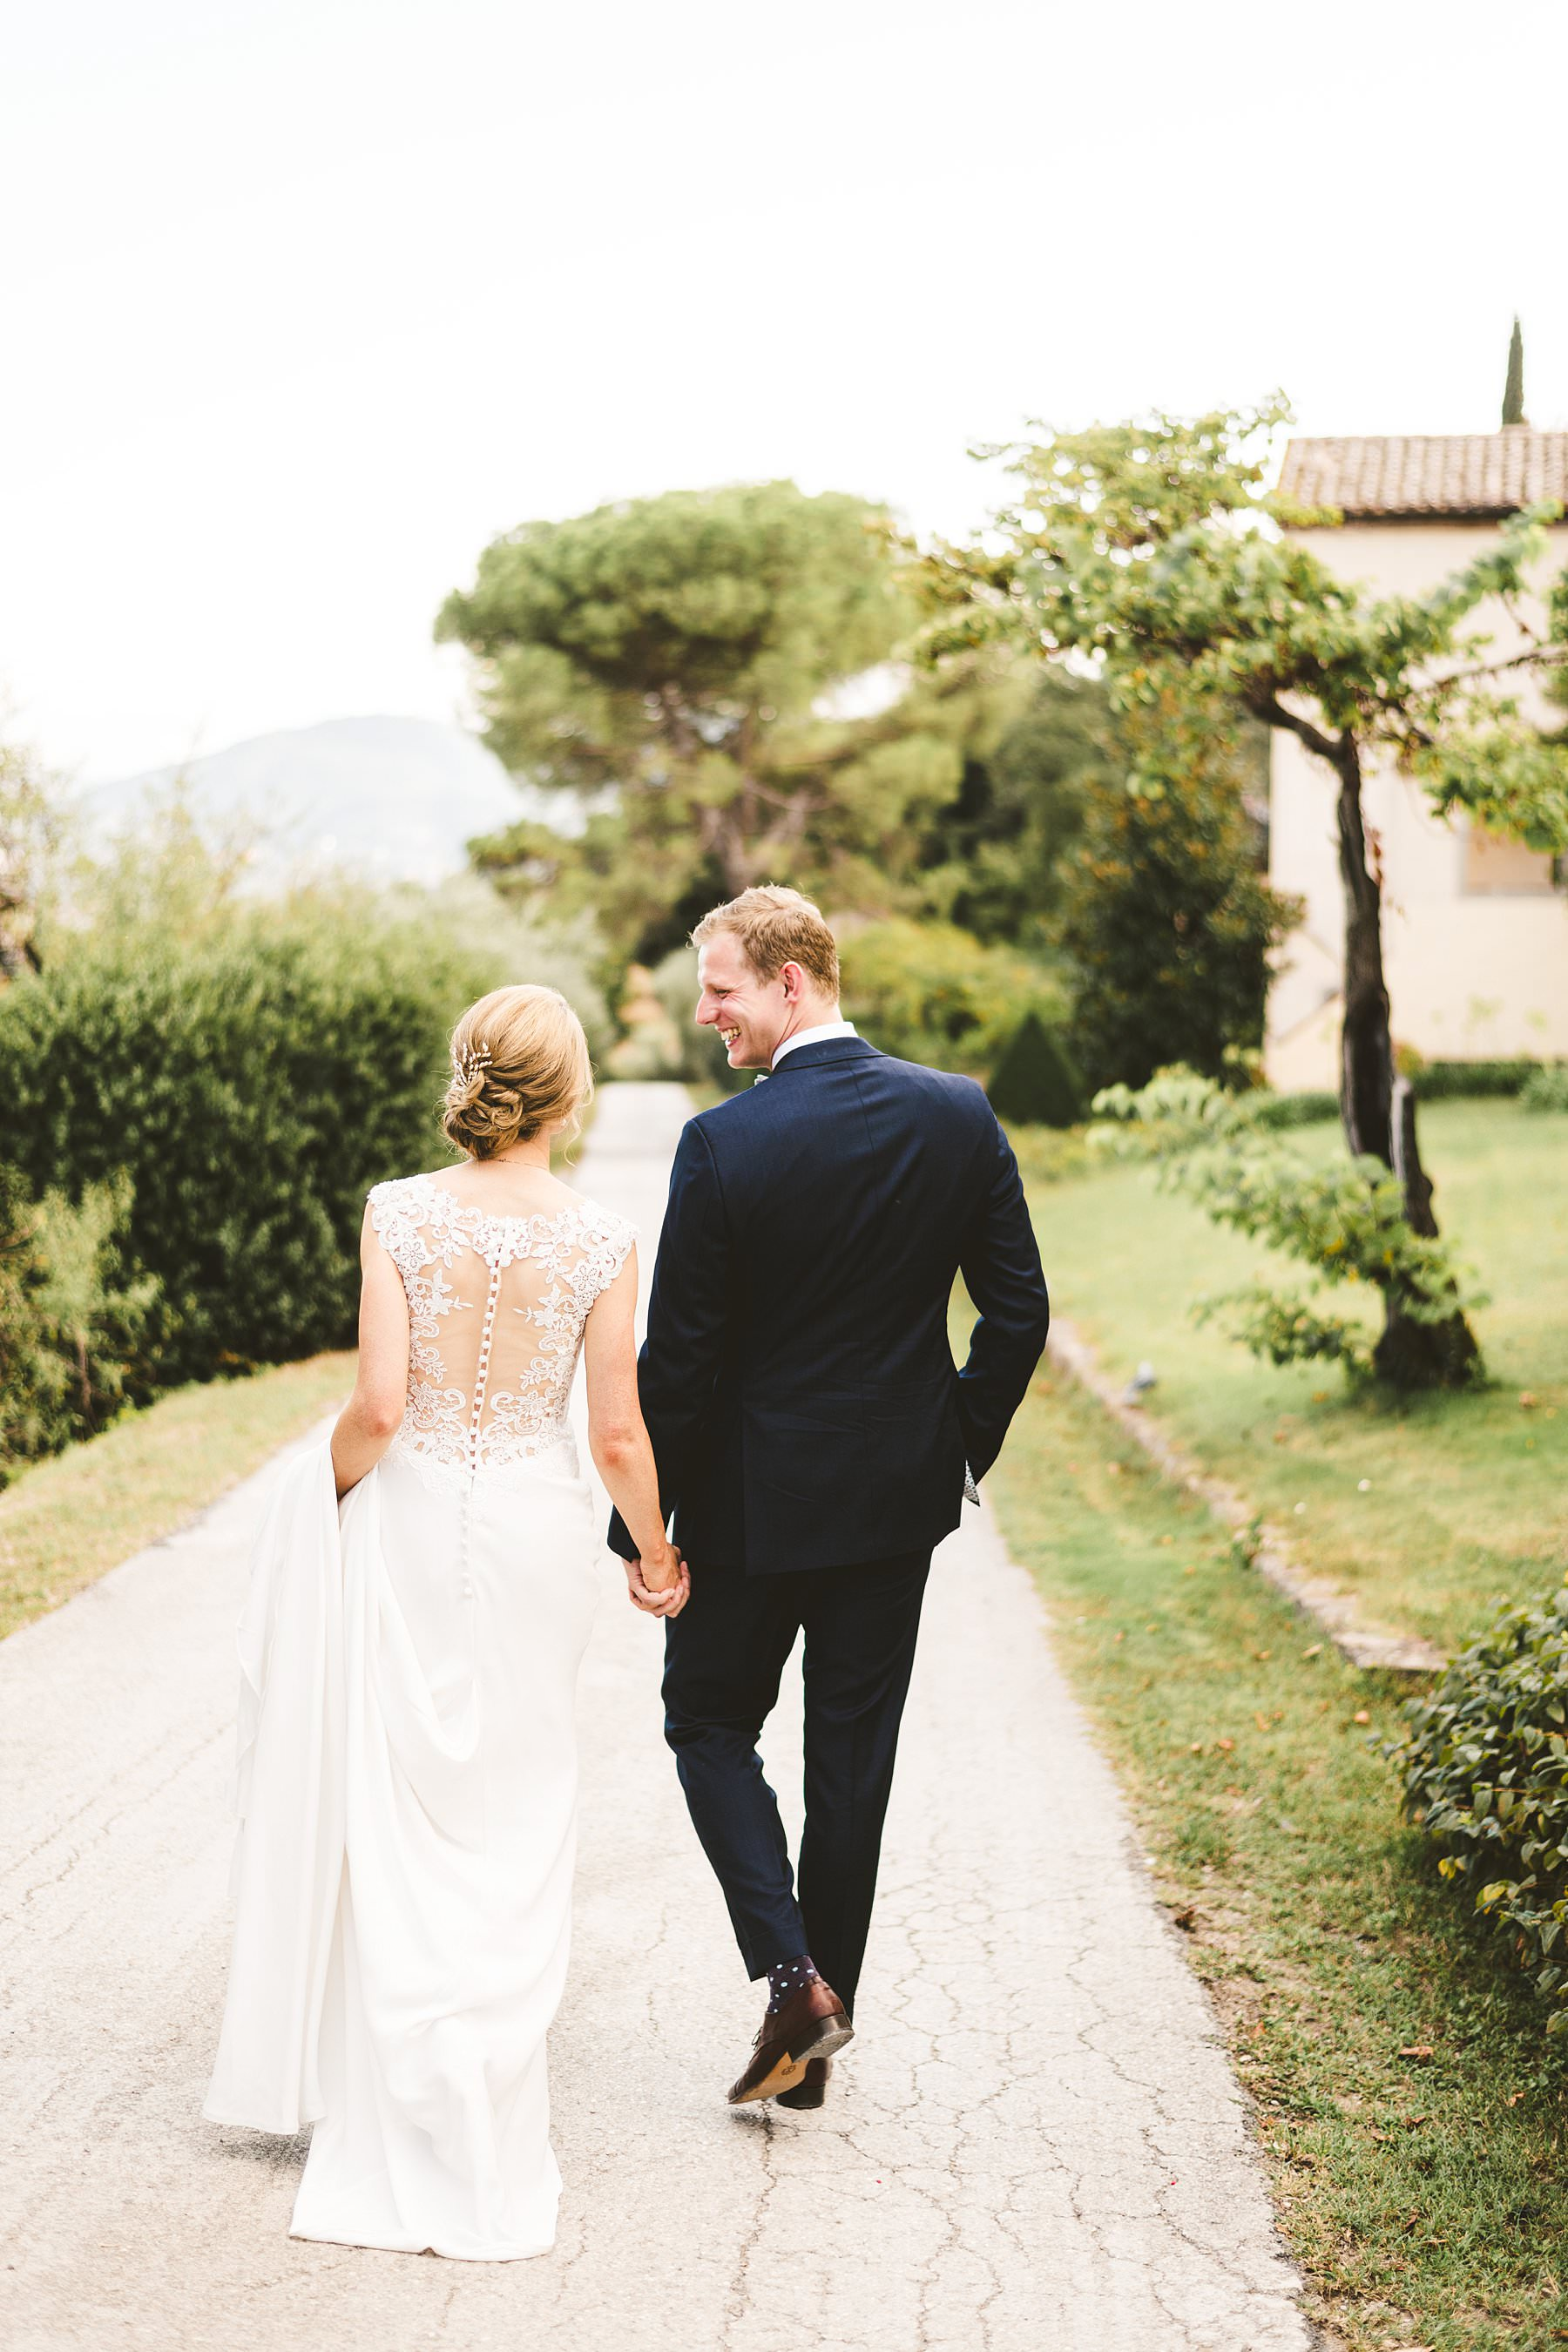 A special international wedding in the countryside of Umbria, Italy. Elegant Australian wedding couple portrait around the property of Villa Monte Solare, a historic residence tucked in the countryside among rolling hills. The settings were countryside landscapes with cypress lines, olive groves and a stunning wall covered in red ivy leaves